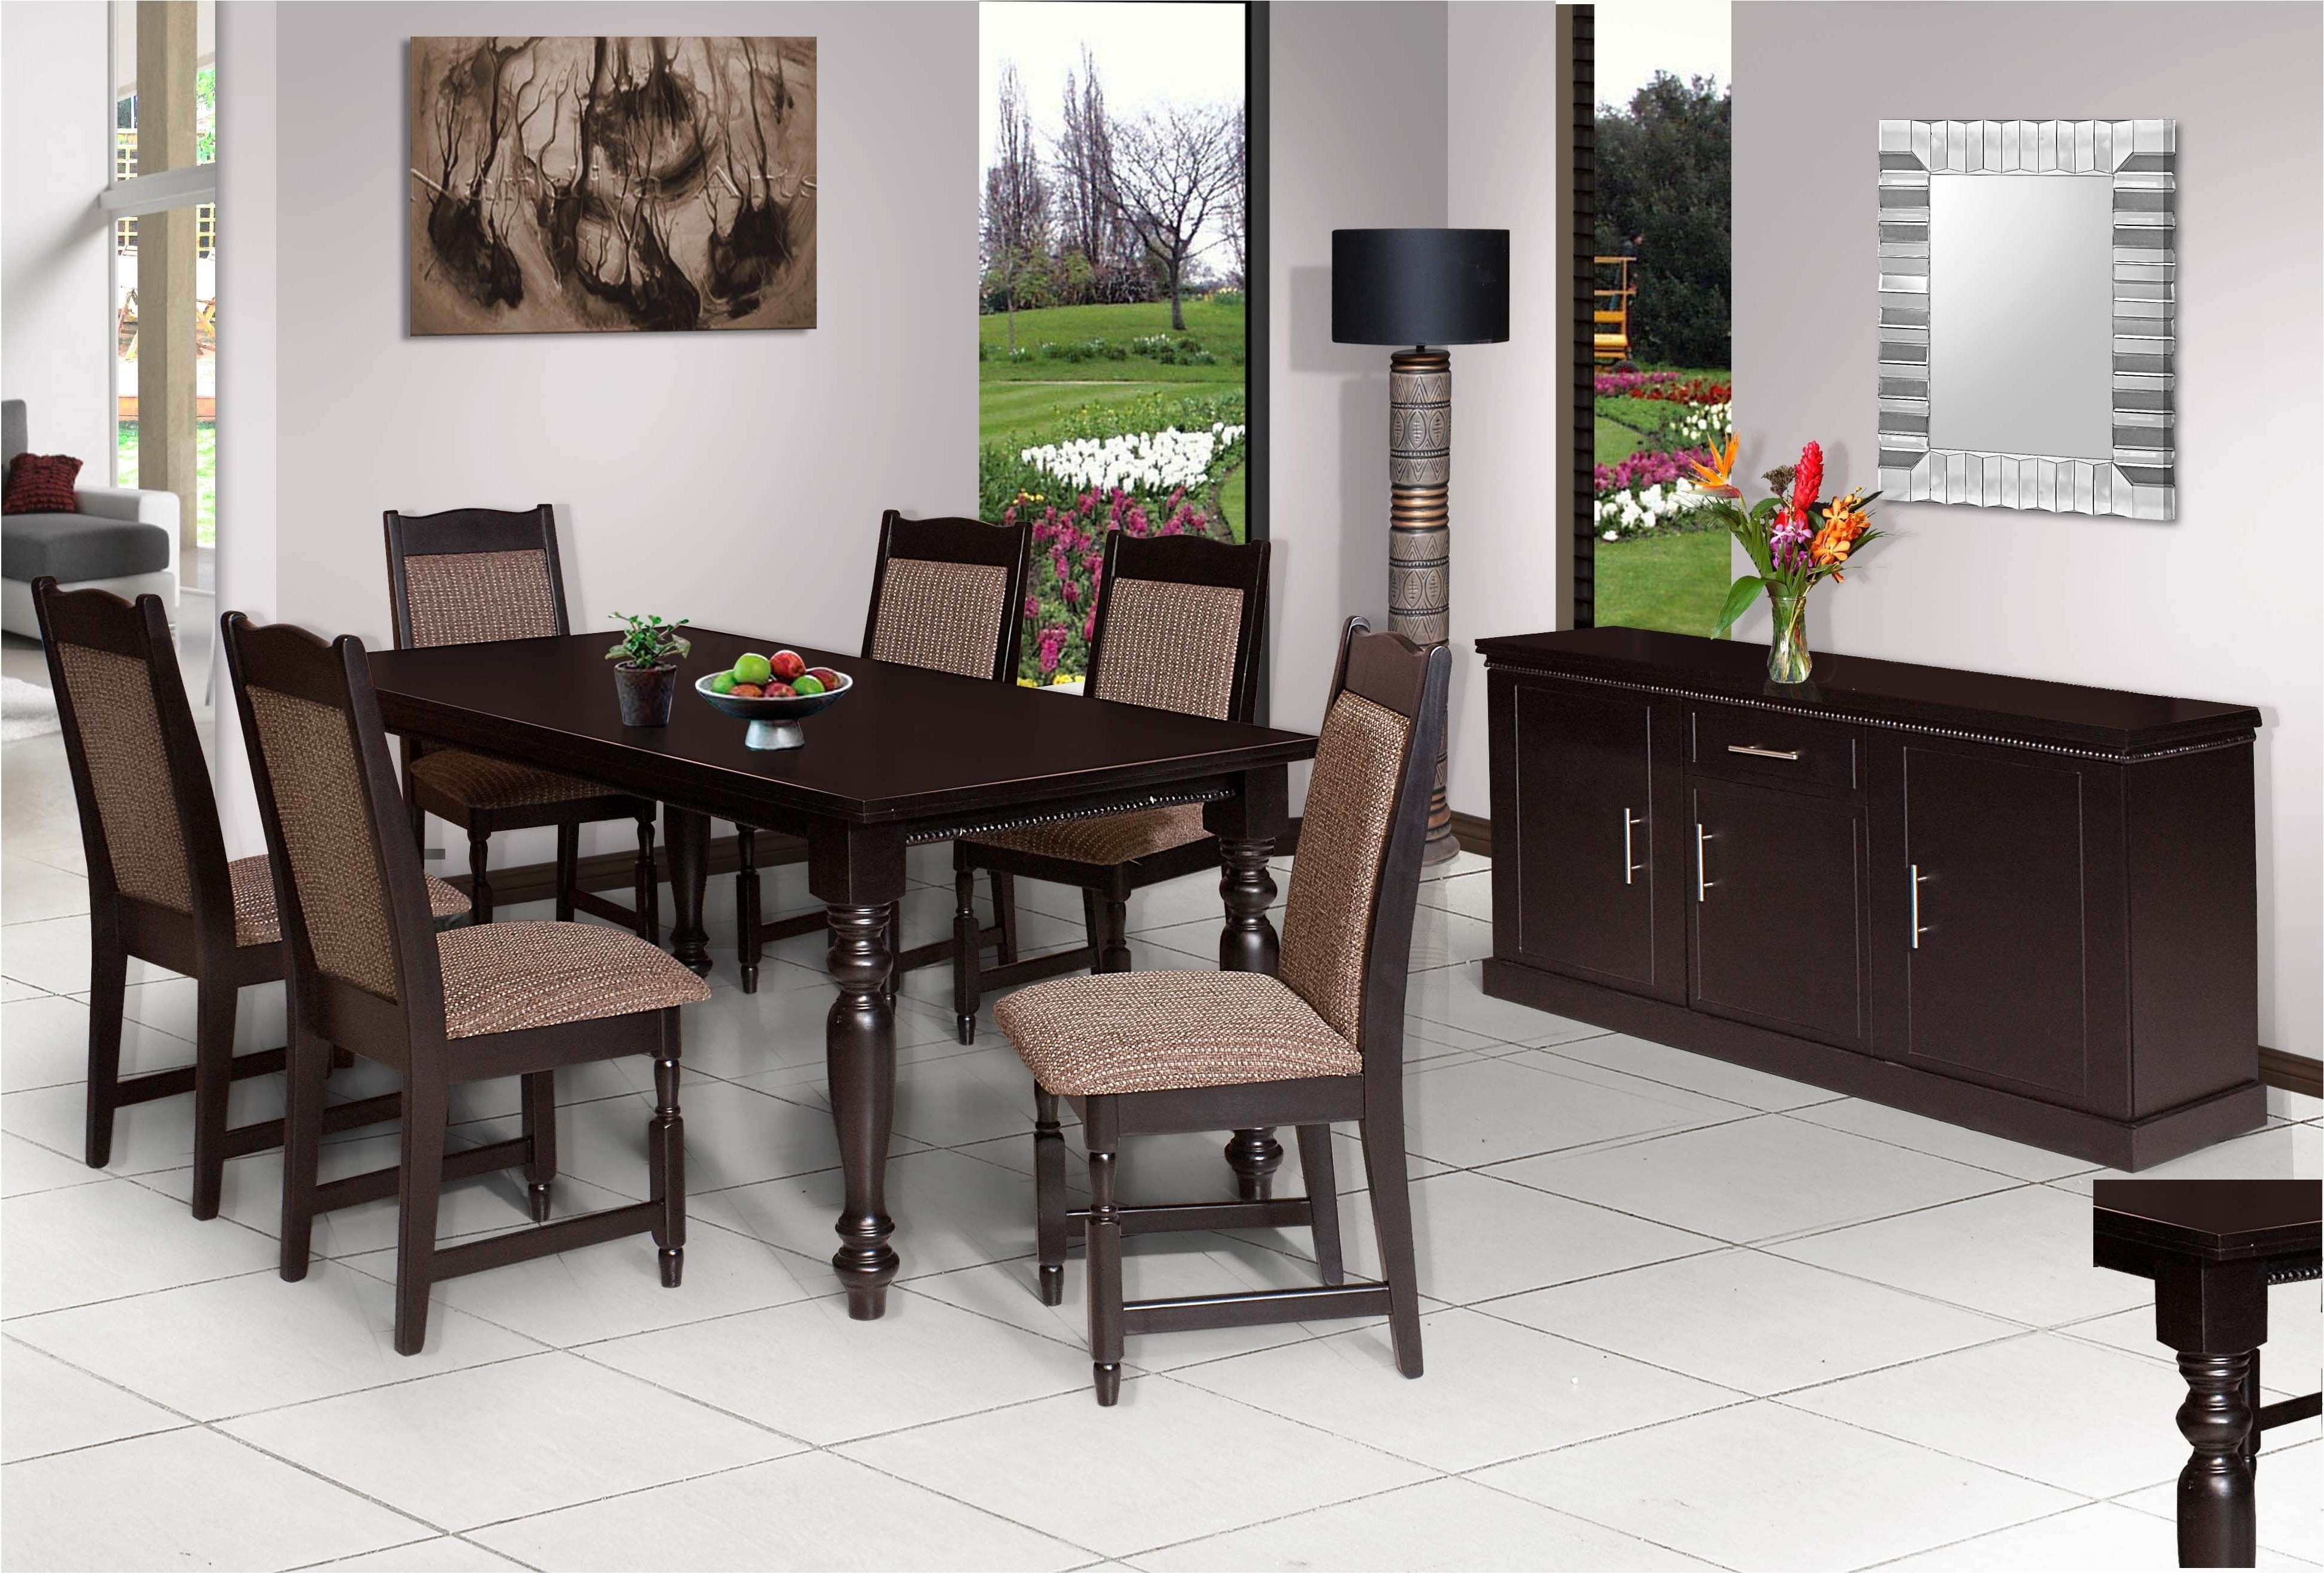 Dining Room Suites intended for Popular Amazing Sherwood Dining Room Suite B In Suites Dining Room Idea